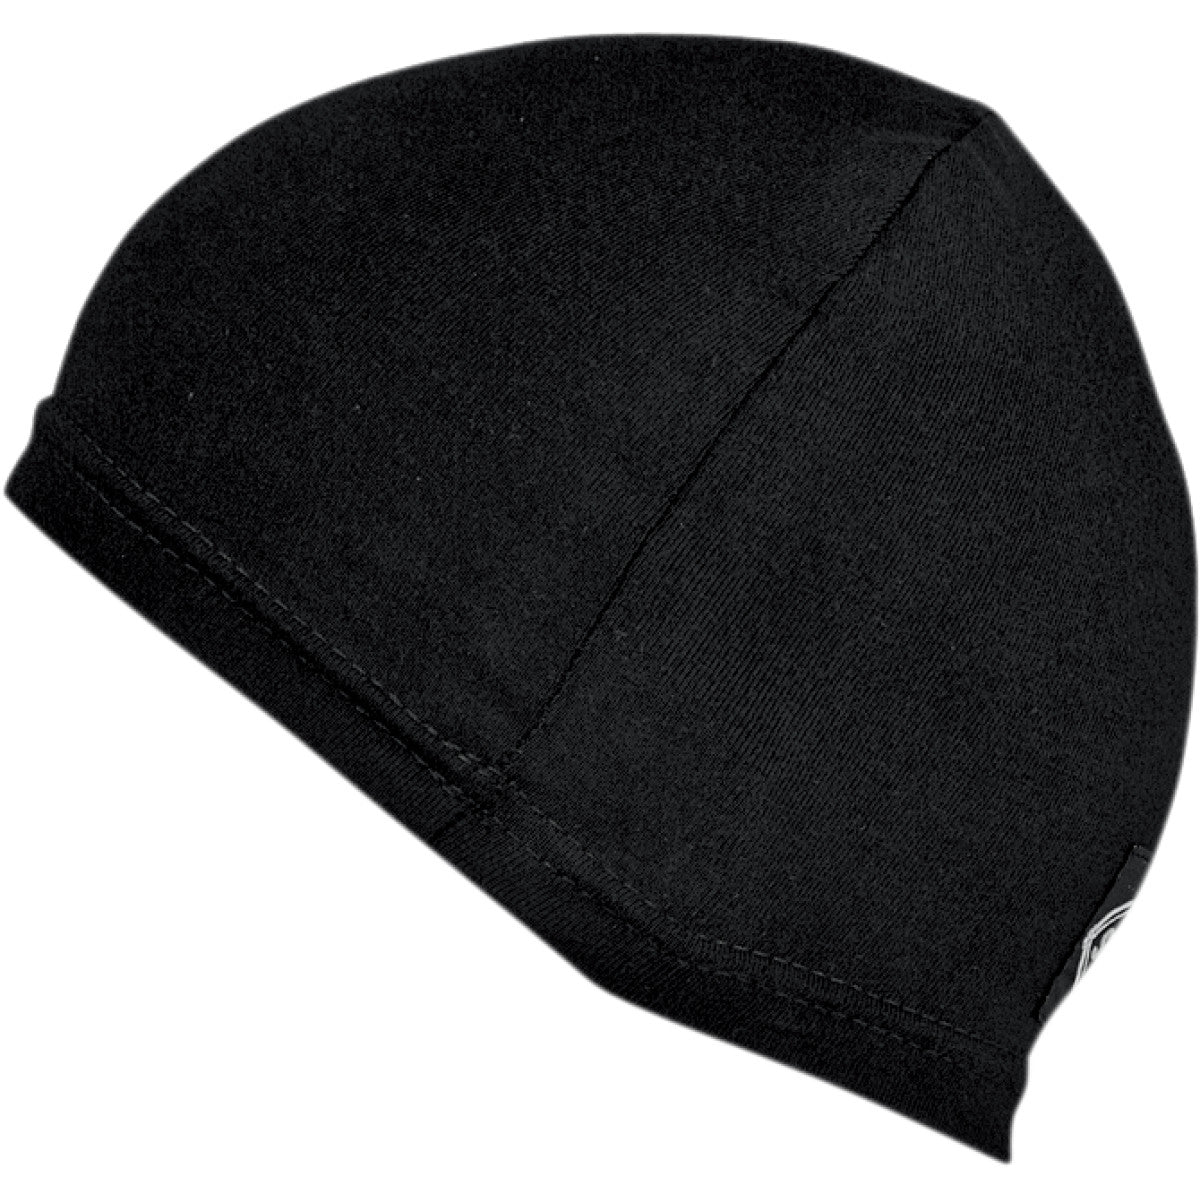 Schampa & Dirt Skins Fleece Skullcaps